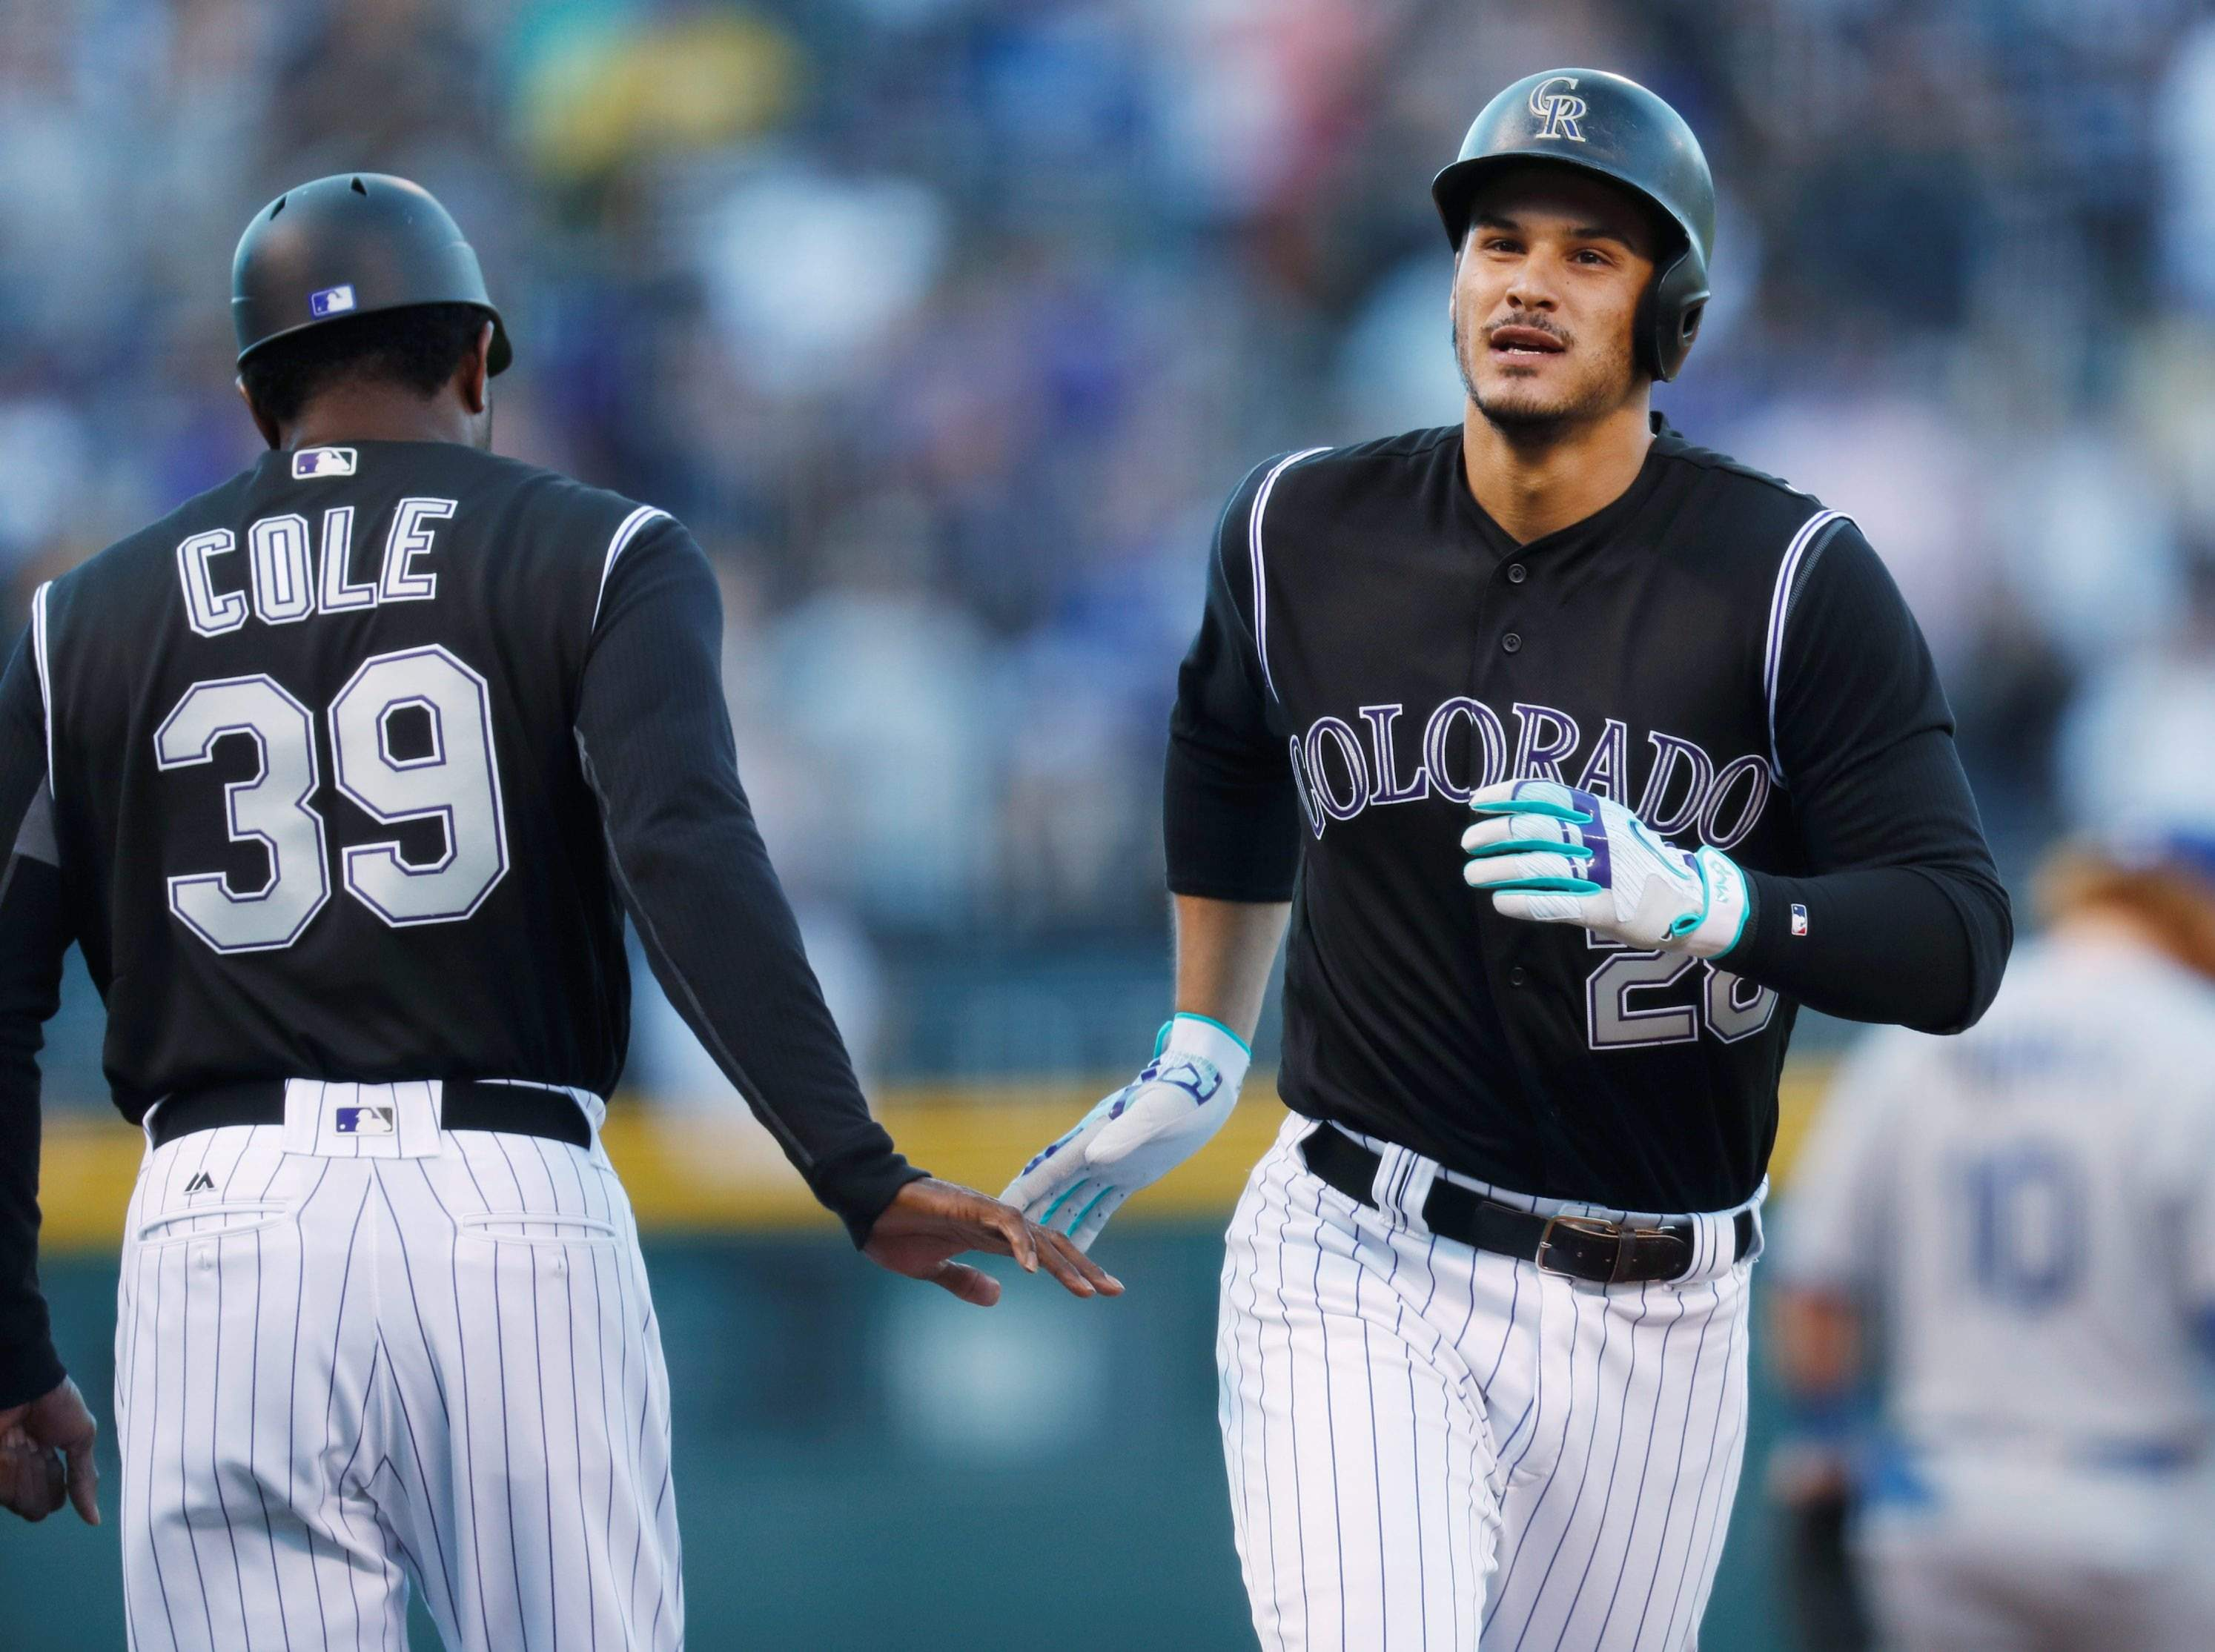 Left Congratulates Nolan Arenado Who Circles The Bases After Hitting A Solo Home Run Off Los Angeles Dodgers Starting Pitcher Clayton Kershaw In